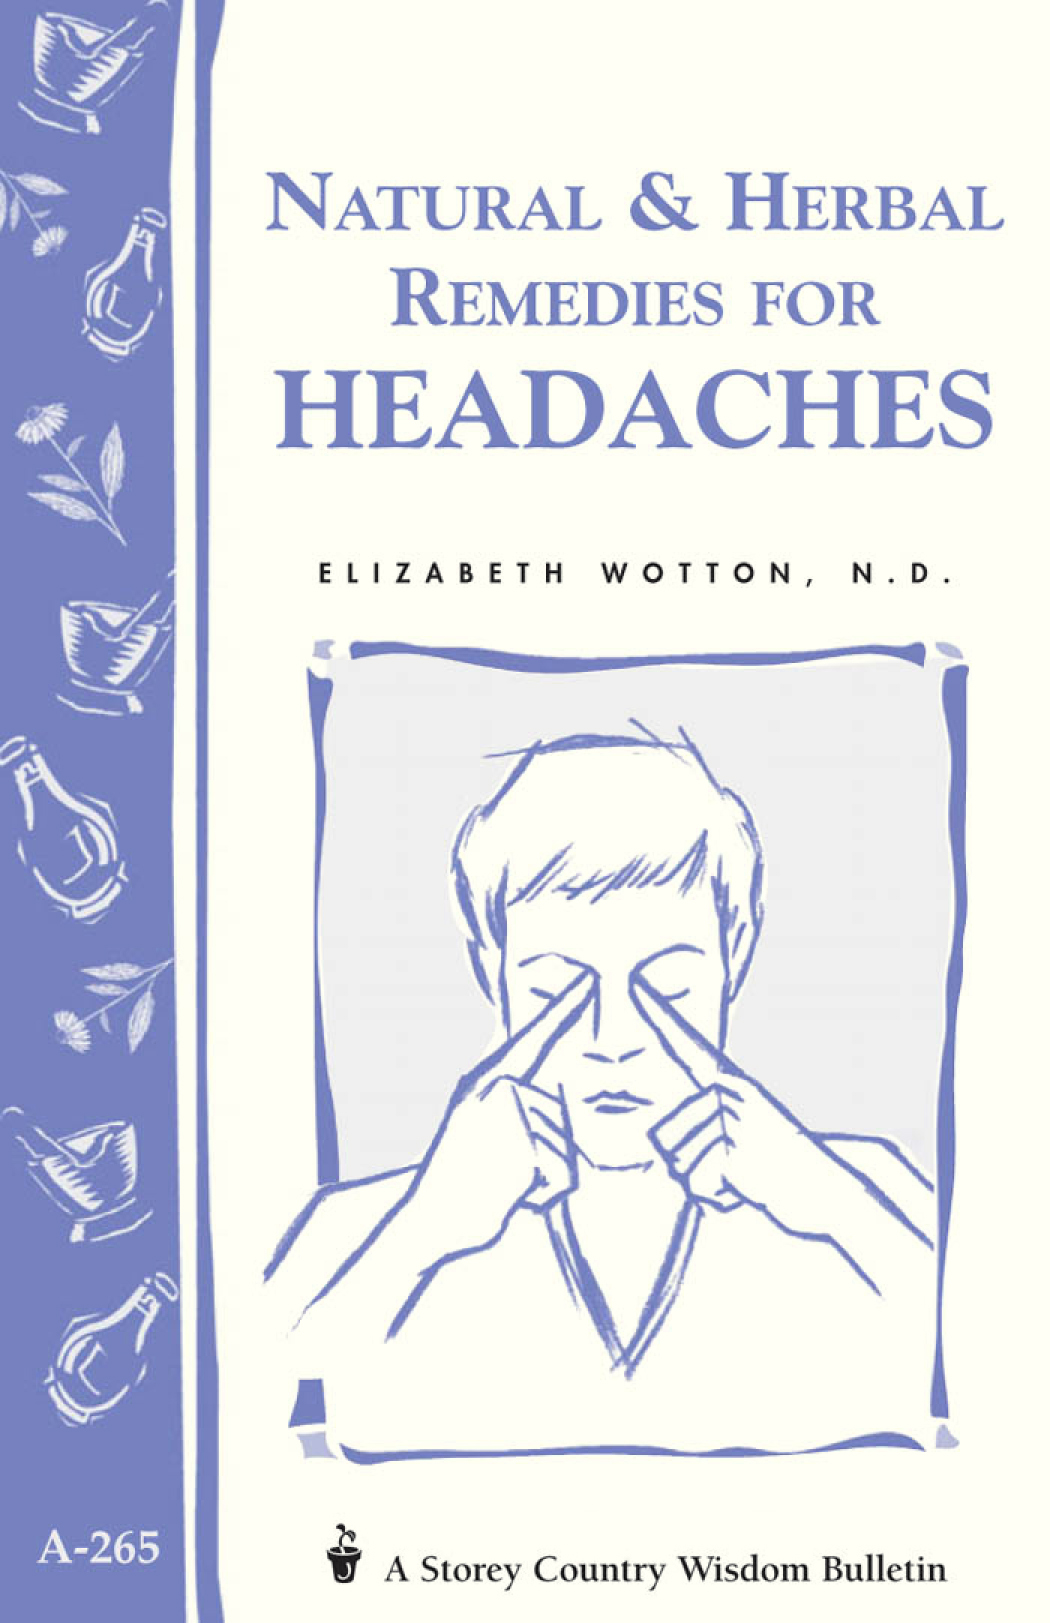 Natural & Herbal Remedies for Headaches Storey's Country Wisdom Bulletin A-265 - Elizabeth Wotton